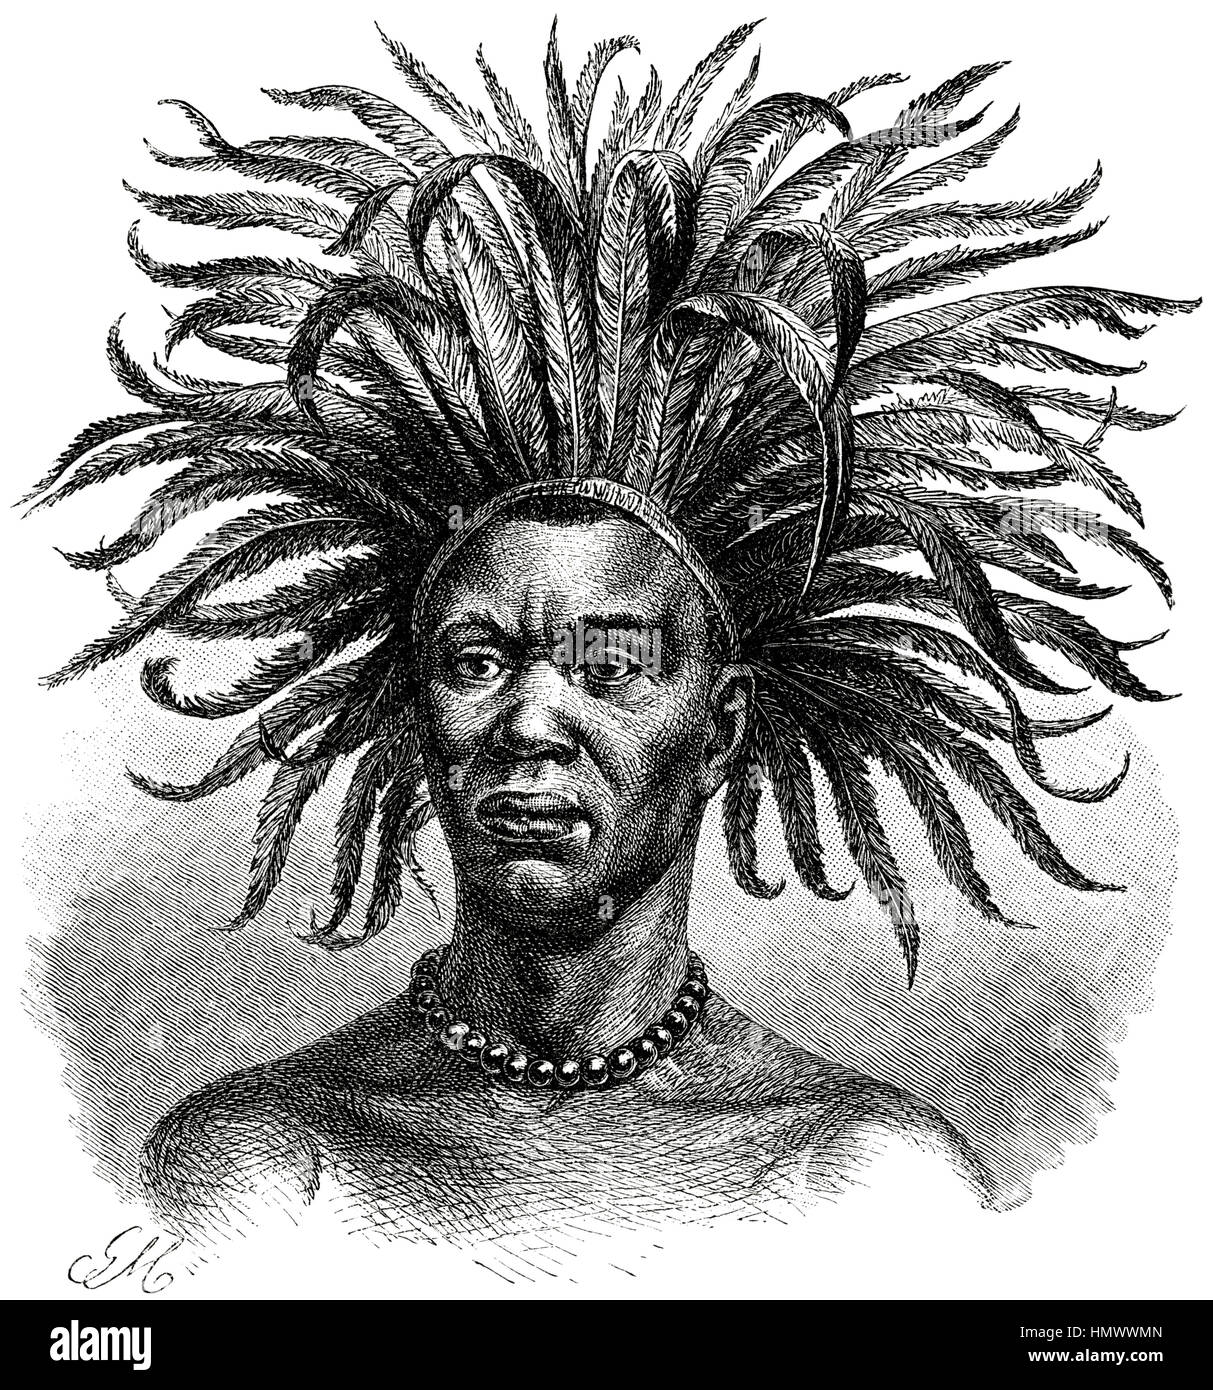 Young Mtuta Man with Feathered Headdress, Africa, Illustration, 1885 - Stock Image